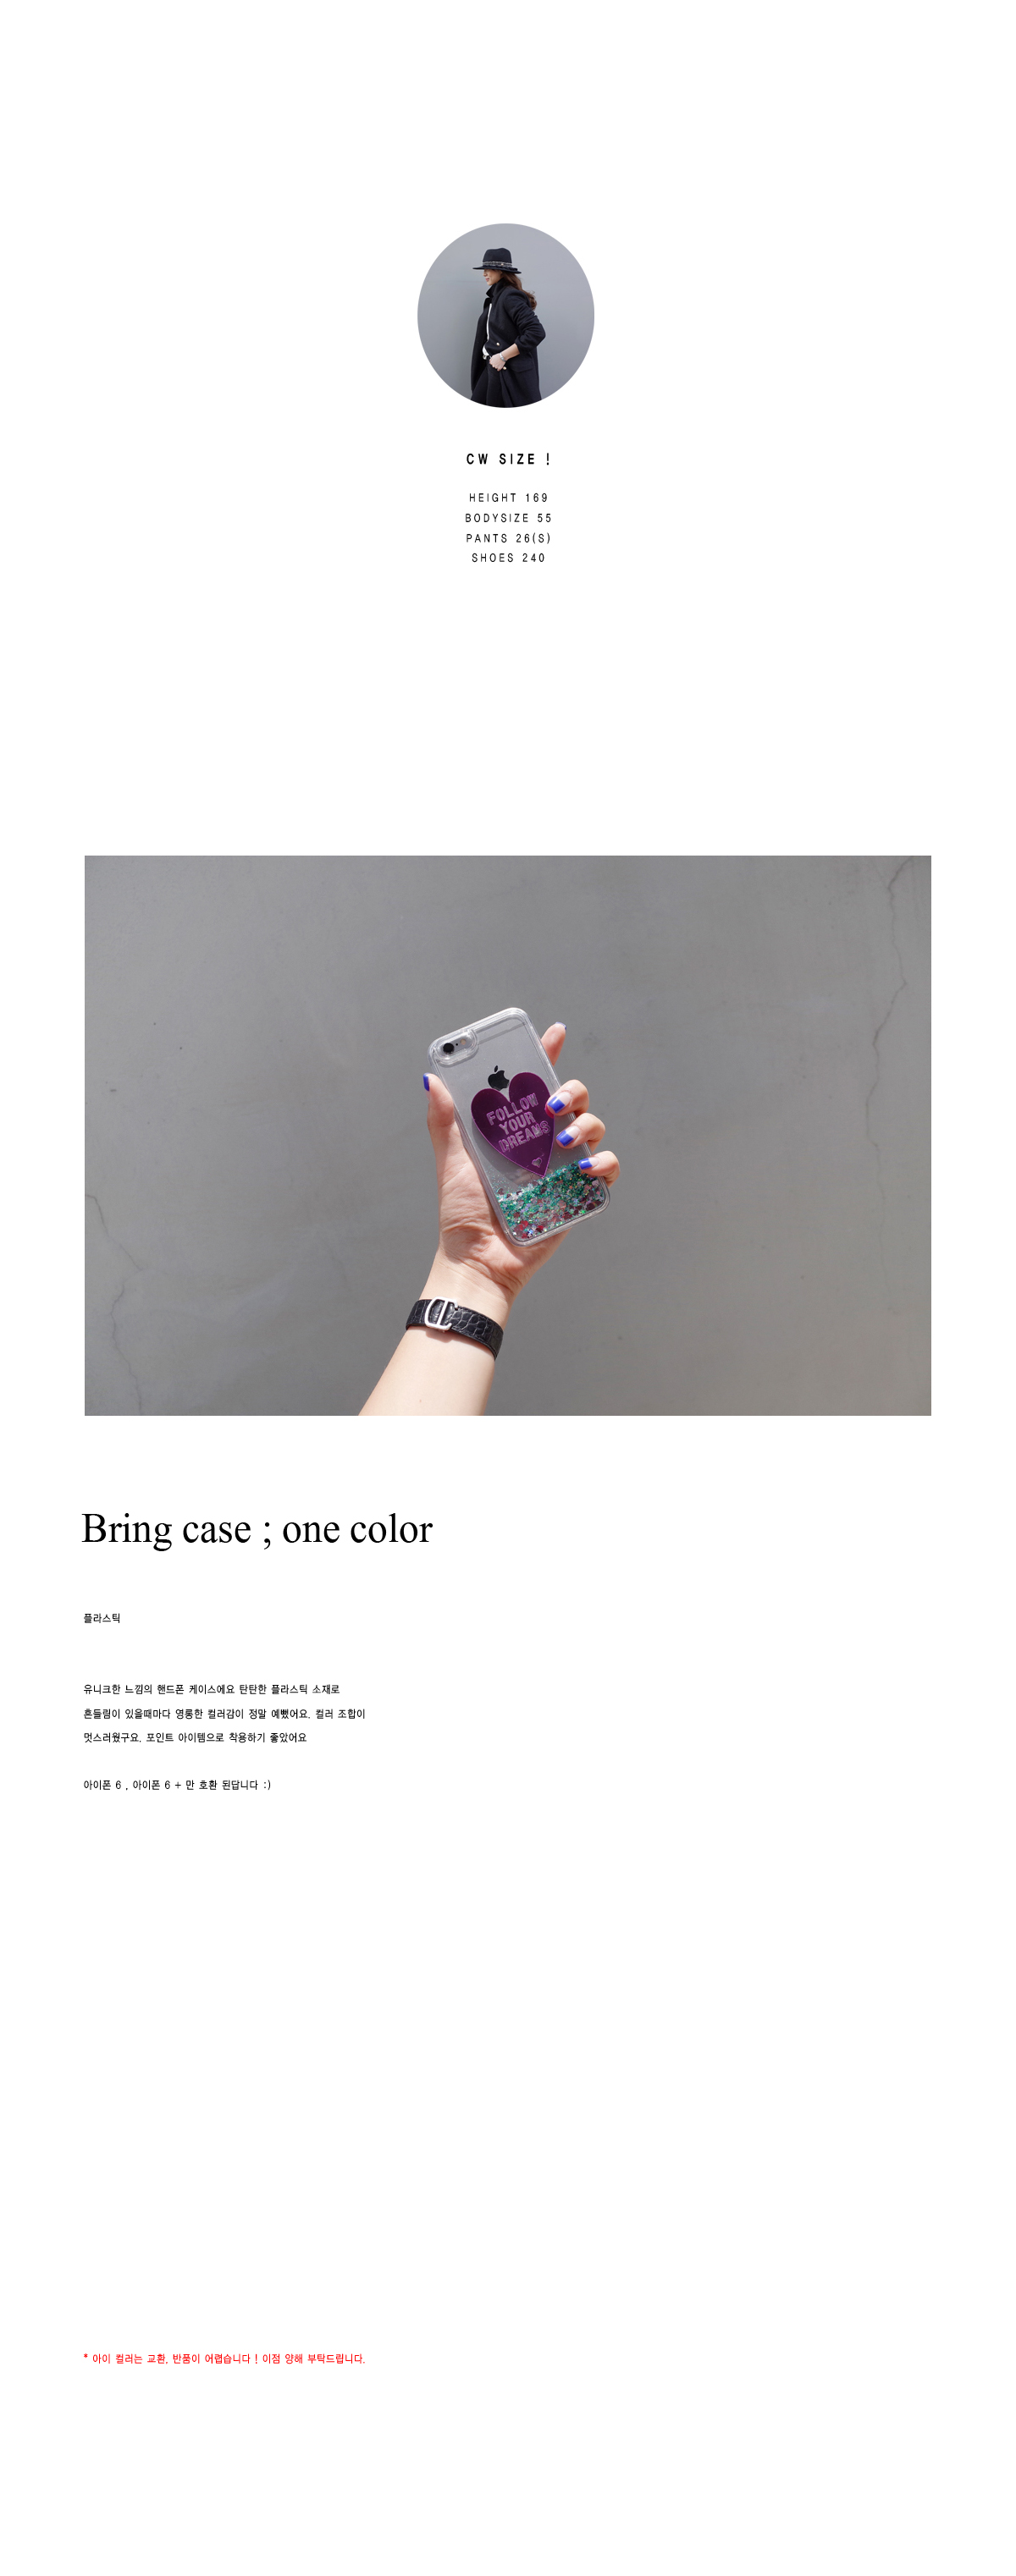 Bring case ; one color BEST ♥